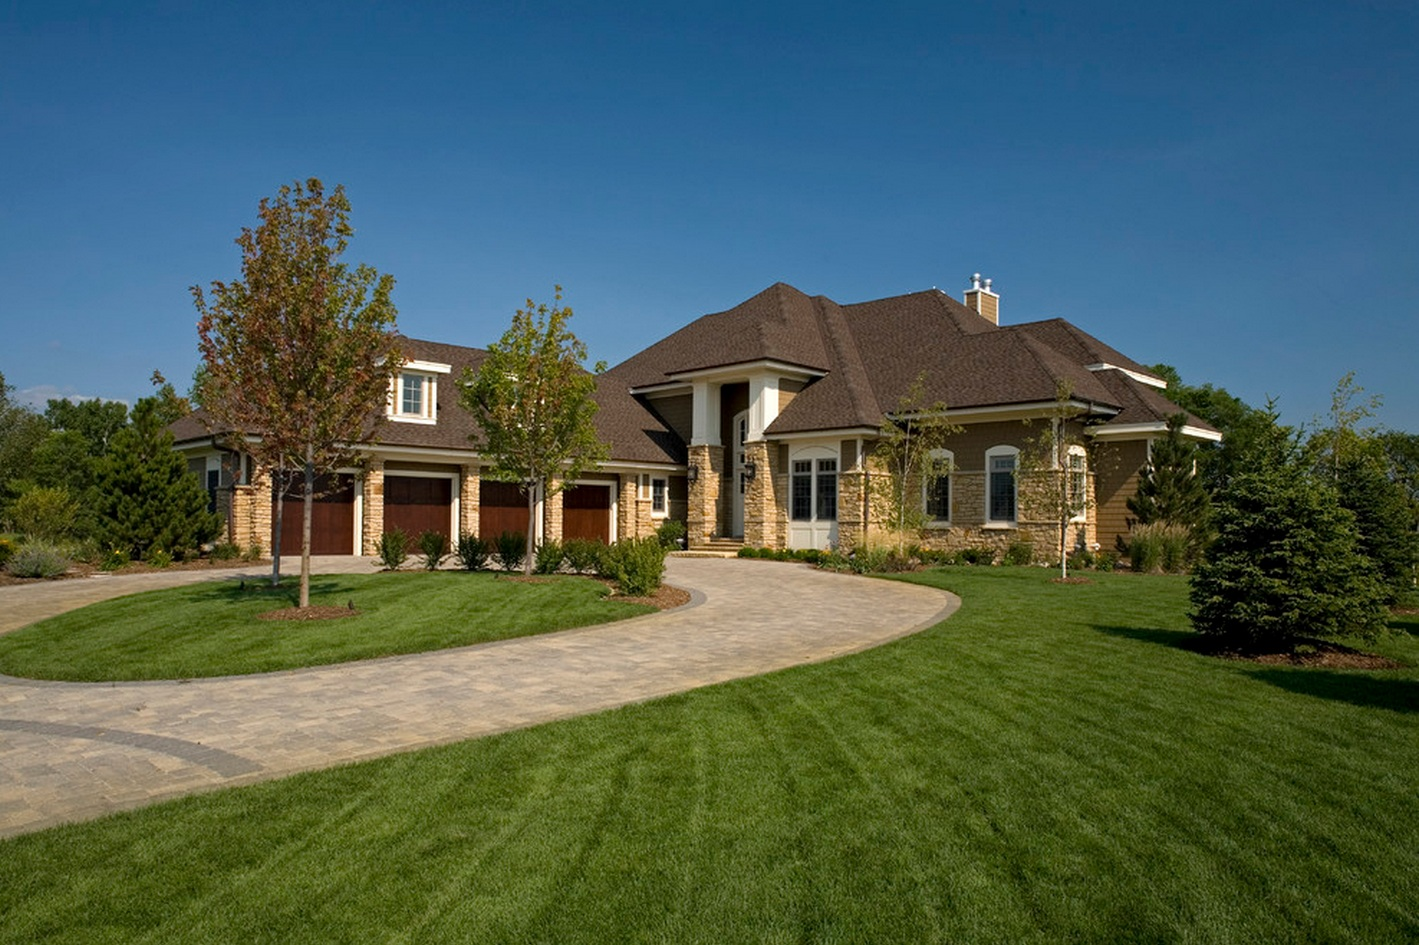 Classically american amazing house has typical american for American classic homes mn